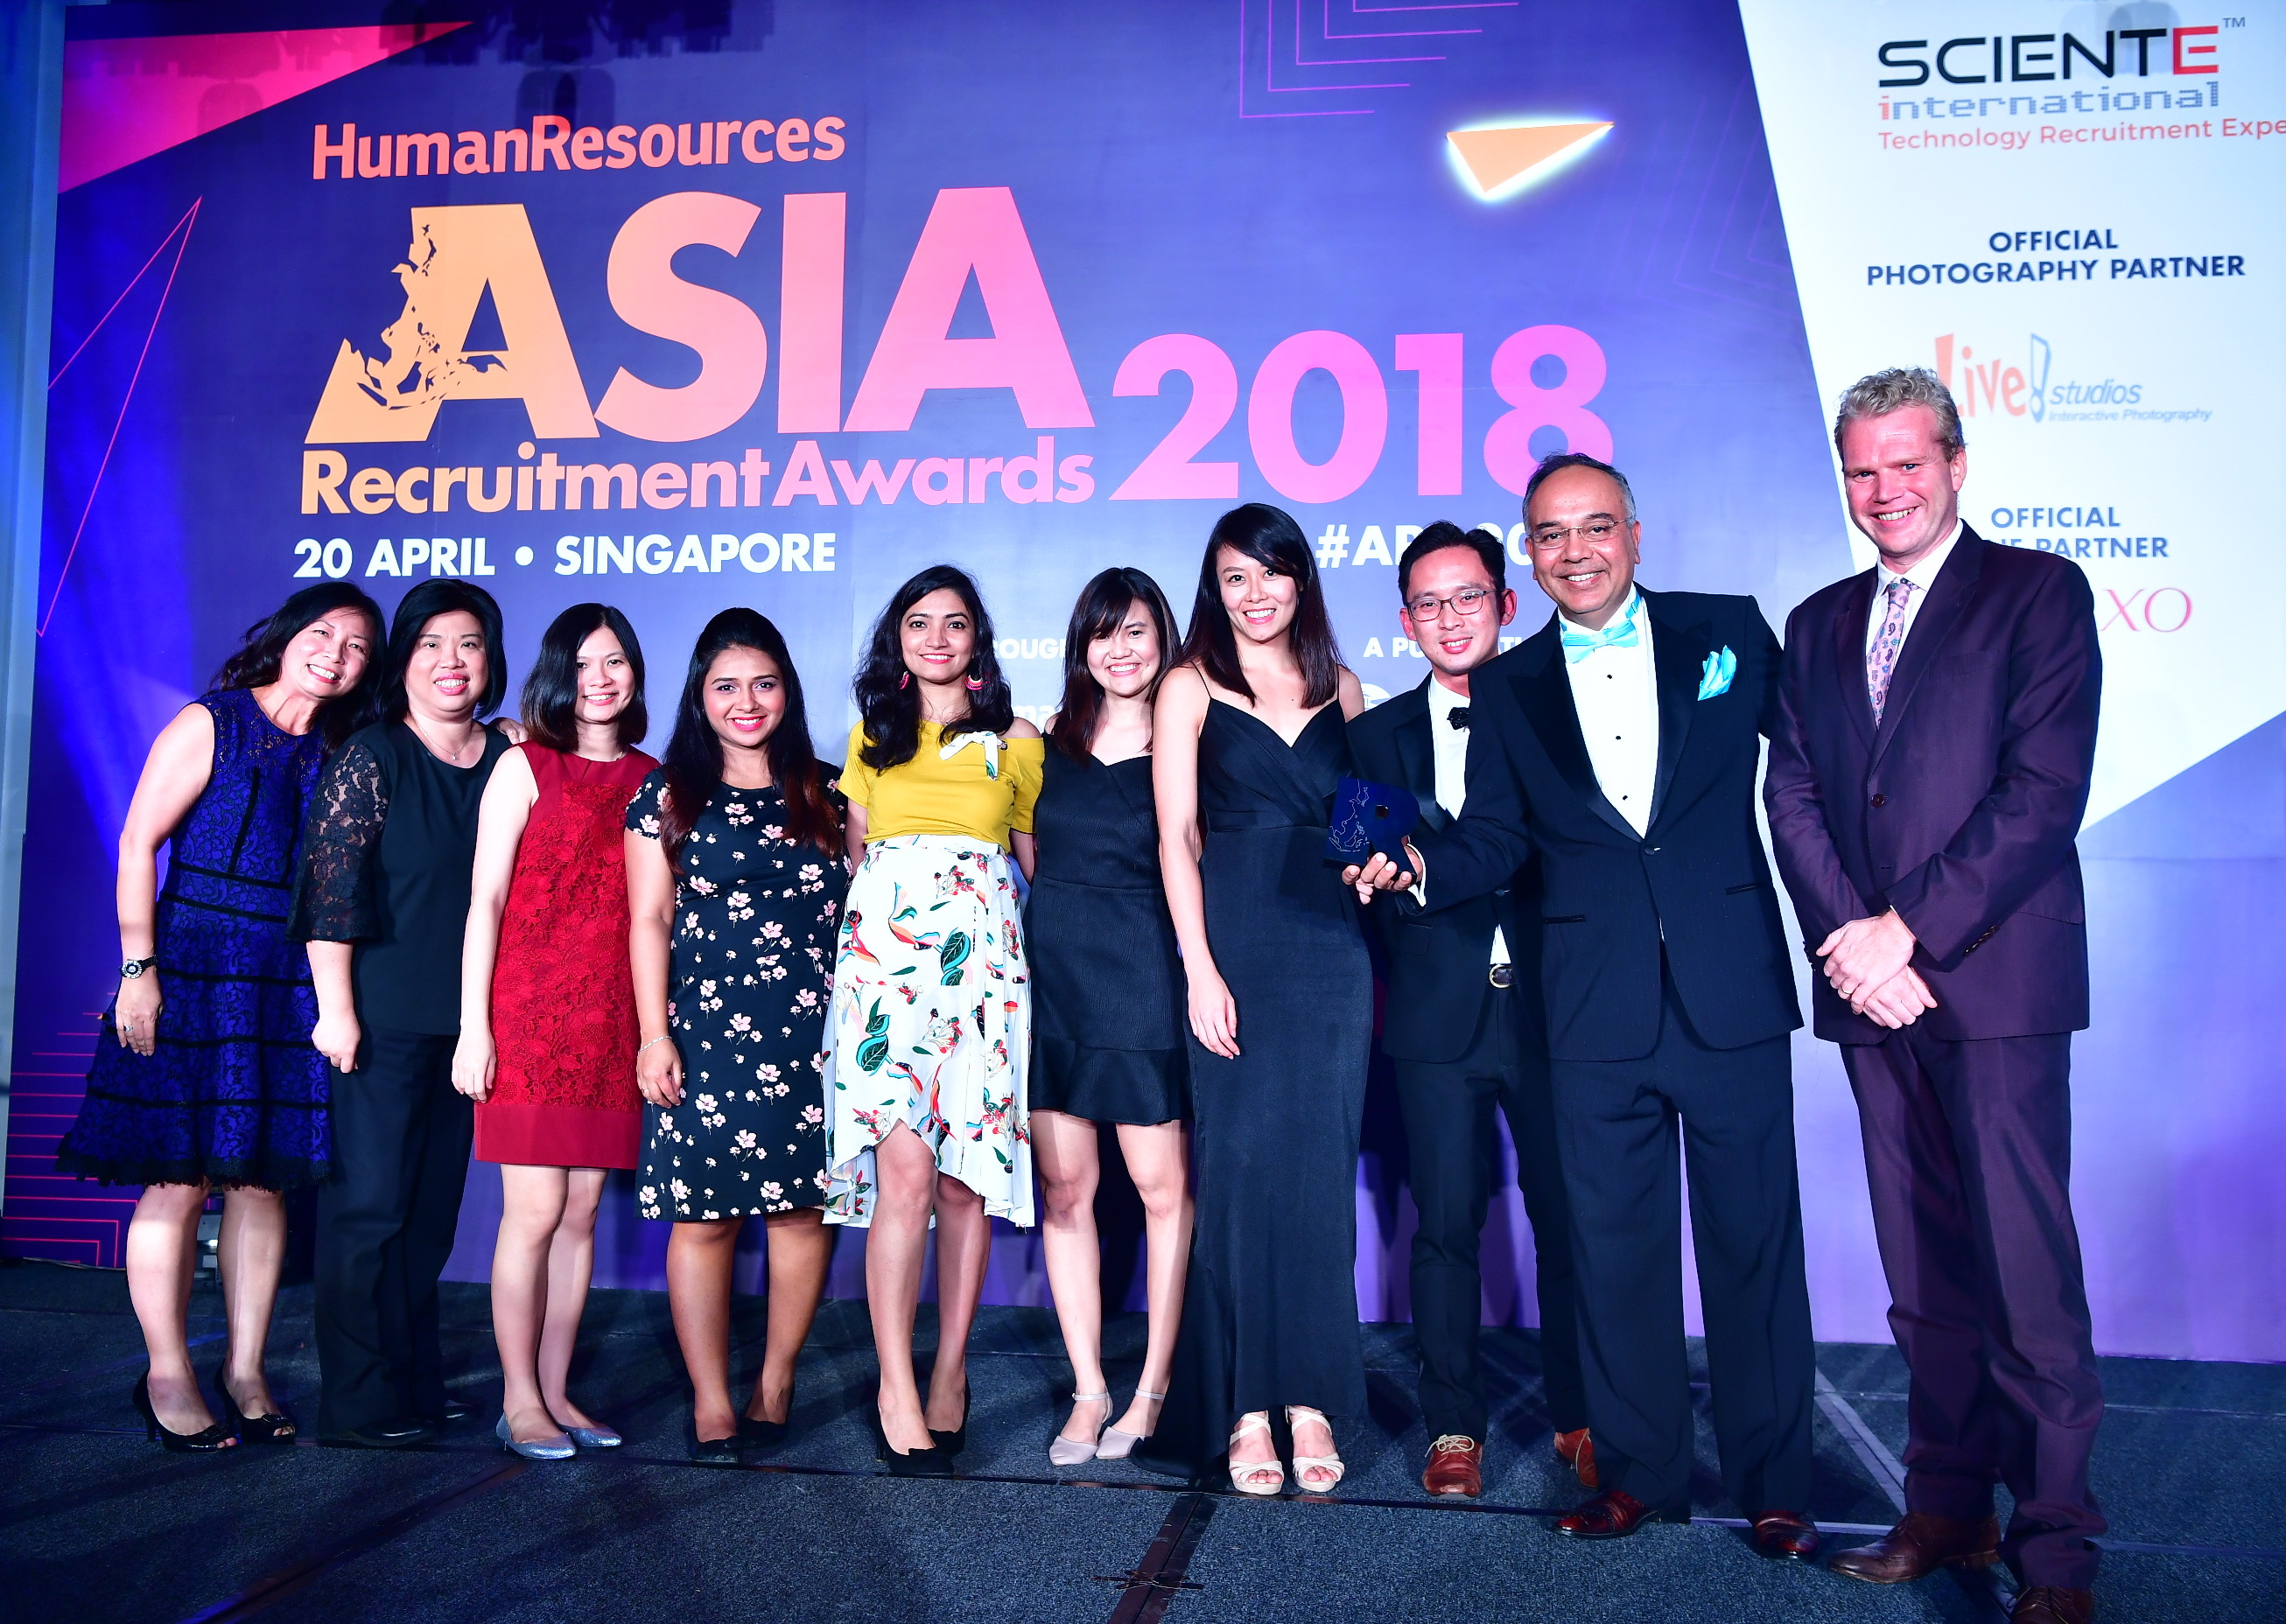 Sciente International is judged The Best Recruitment Agency - Technology, 2018